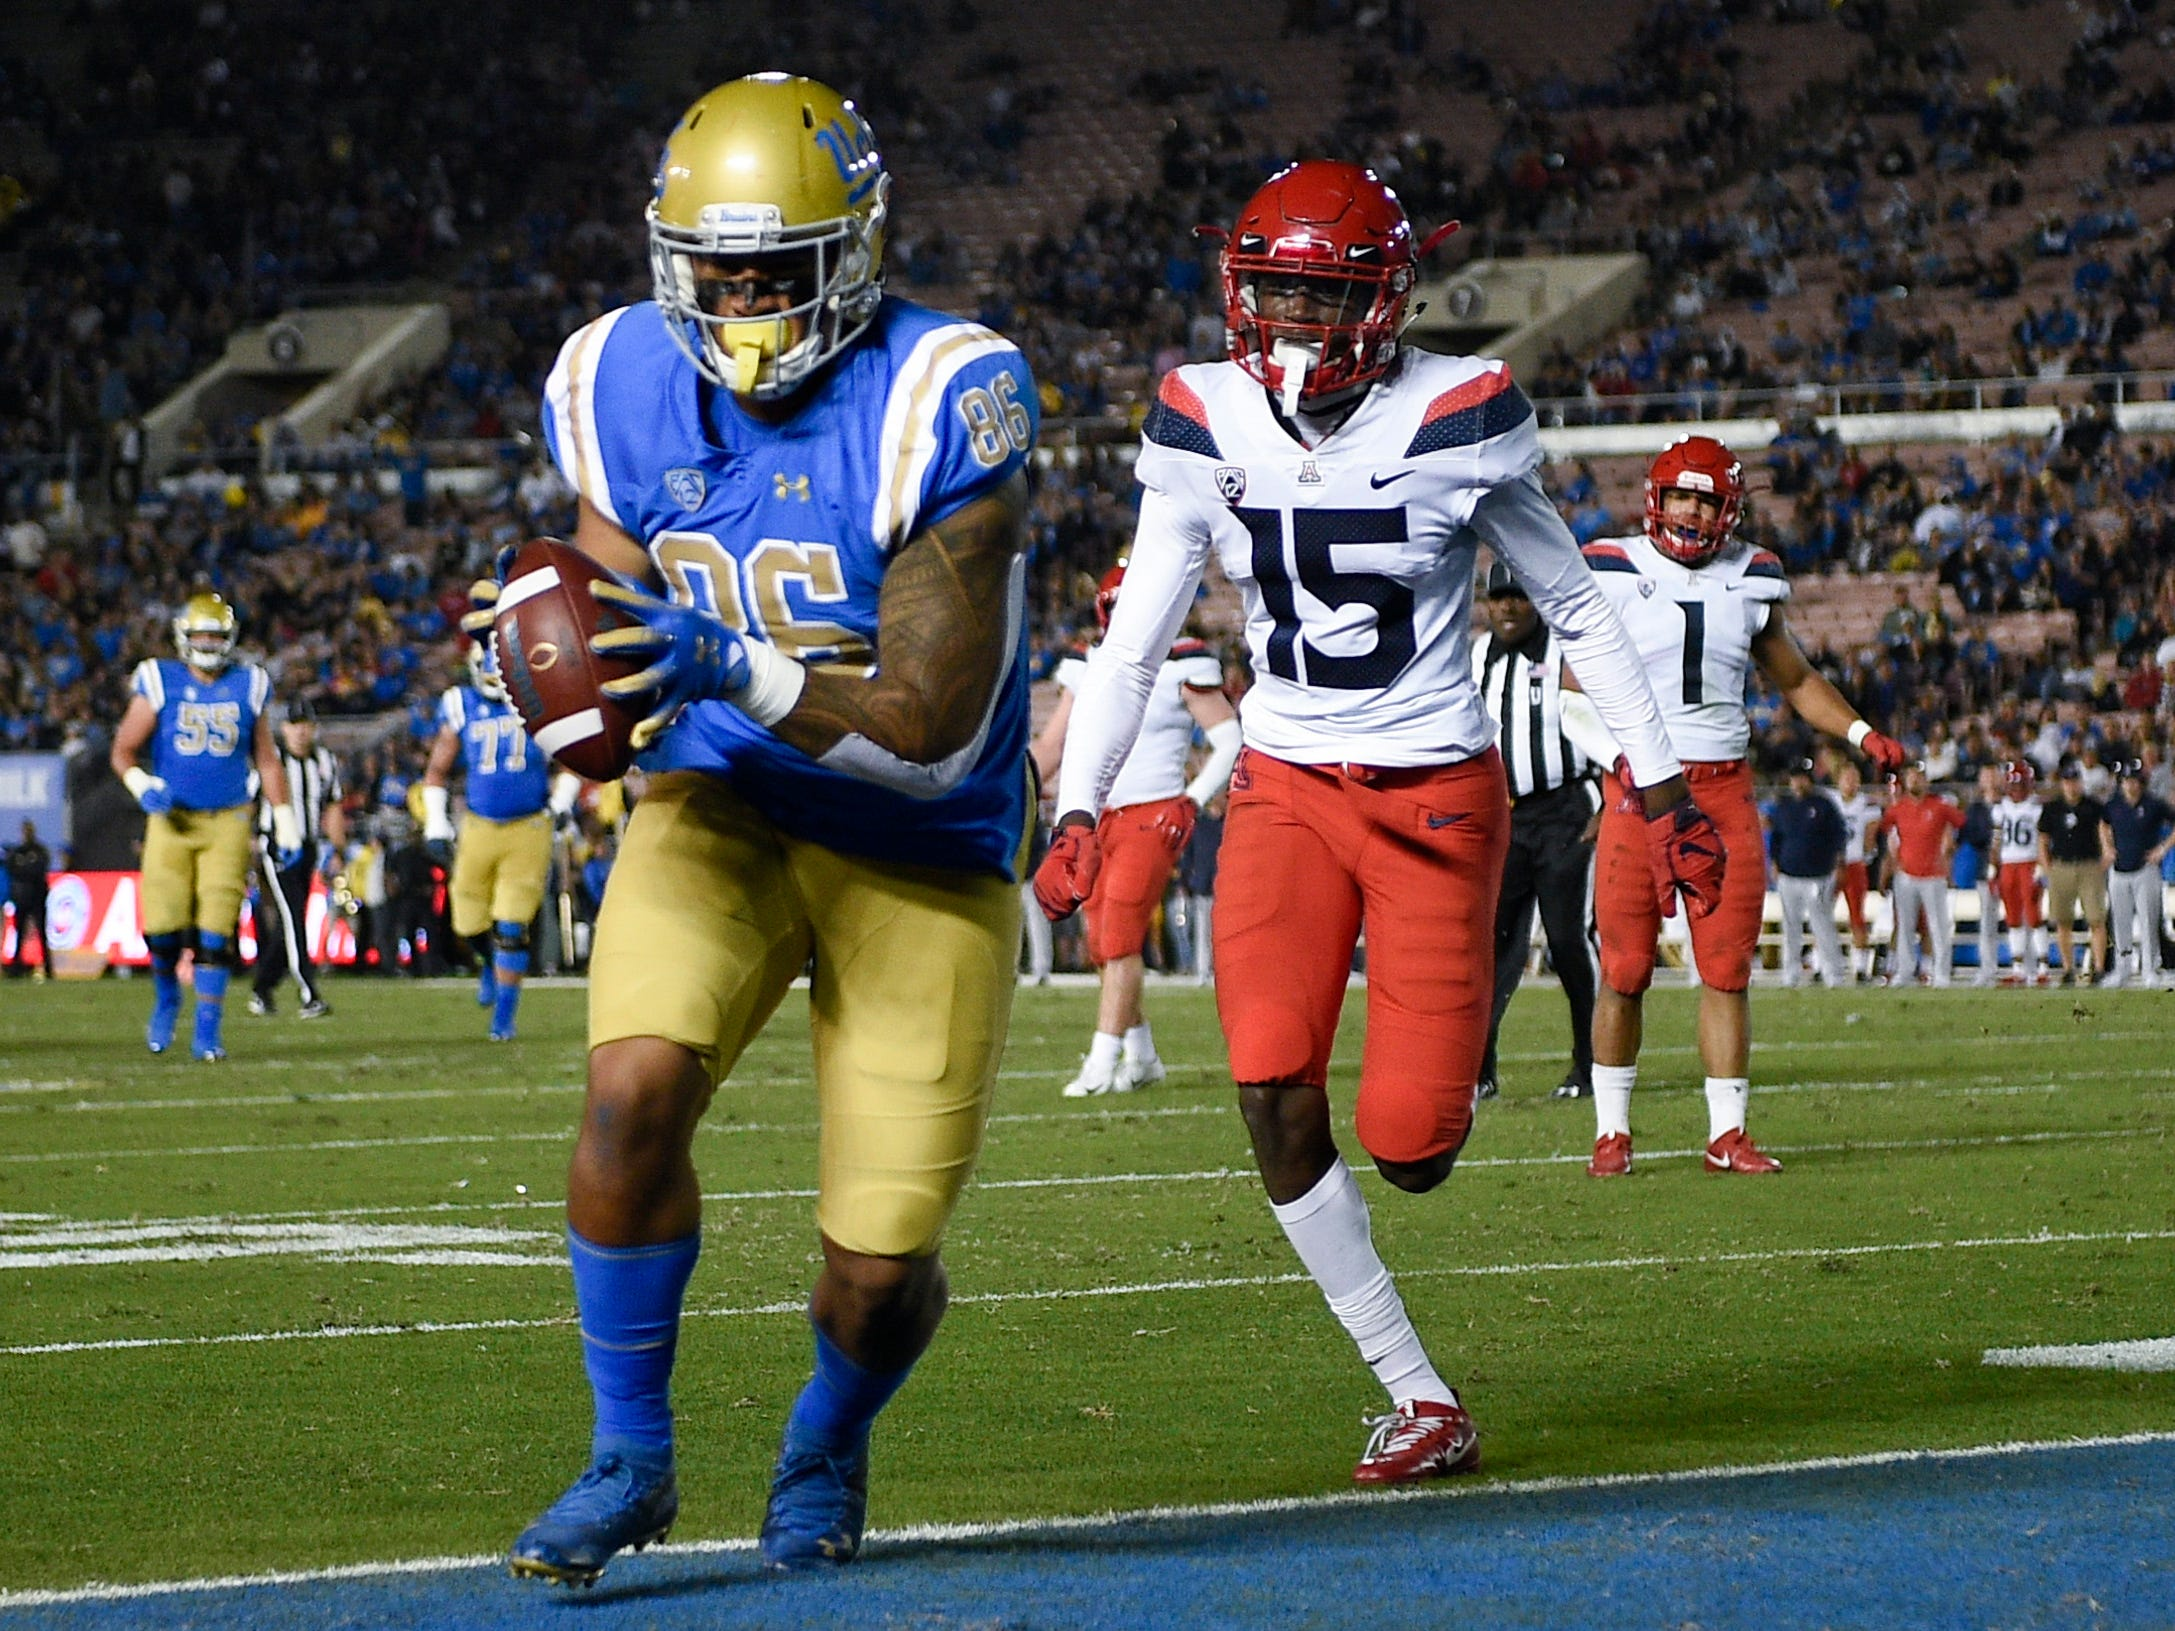 Oct 20, 2018; Pasadena, CA, USA; UCLA Bruins tight end Devin Asiasi (86) catches a pass for a touchdown defended by Arizona Wildcats cornerback McKenzie Barnes (15) during the first half at Rose Bowl. Mandatory Credit: Kelvin Kuo-USA TODAY Sports